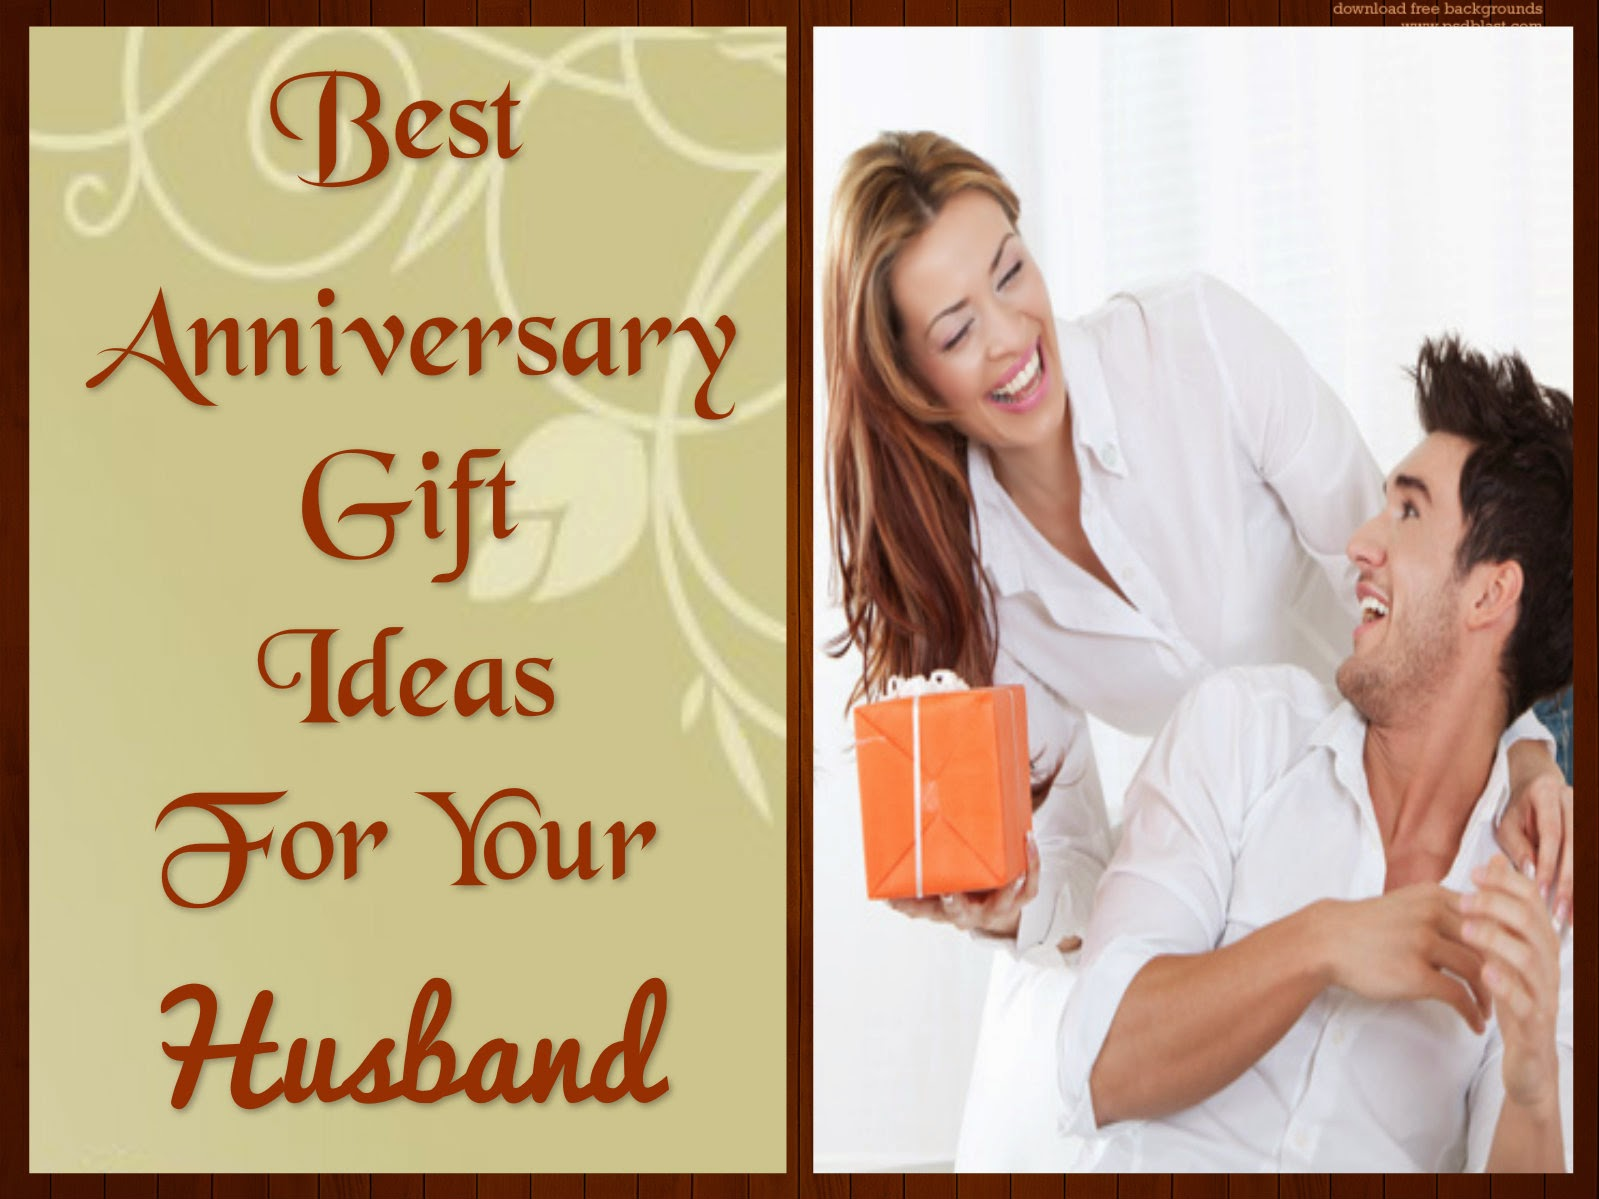 Wedding Gift Ideas For Wife From Husband : Wedding Anniversary Gifts: Best Anniversary Gift Ideas For Your ...